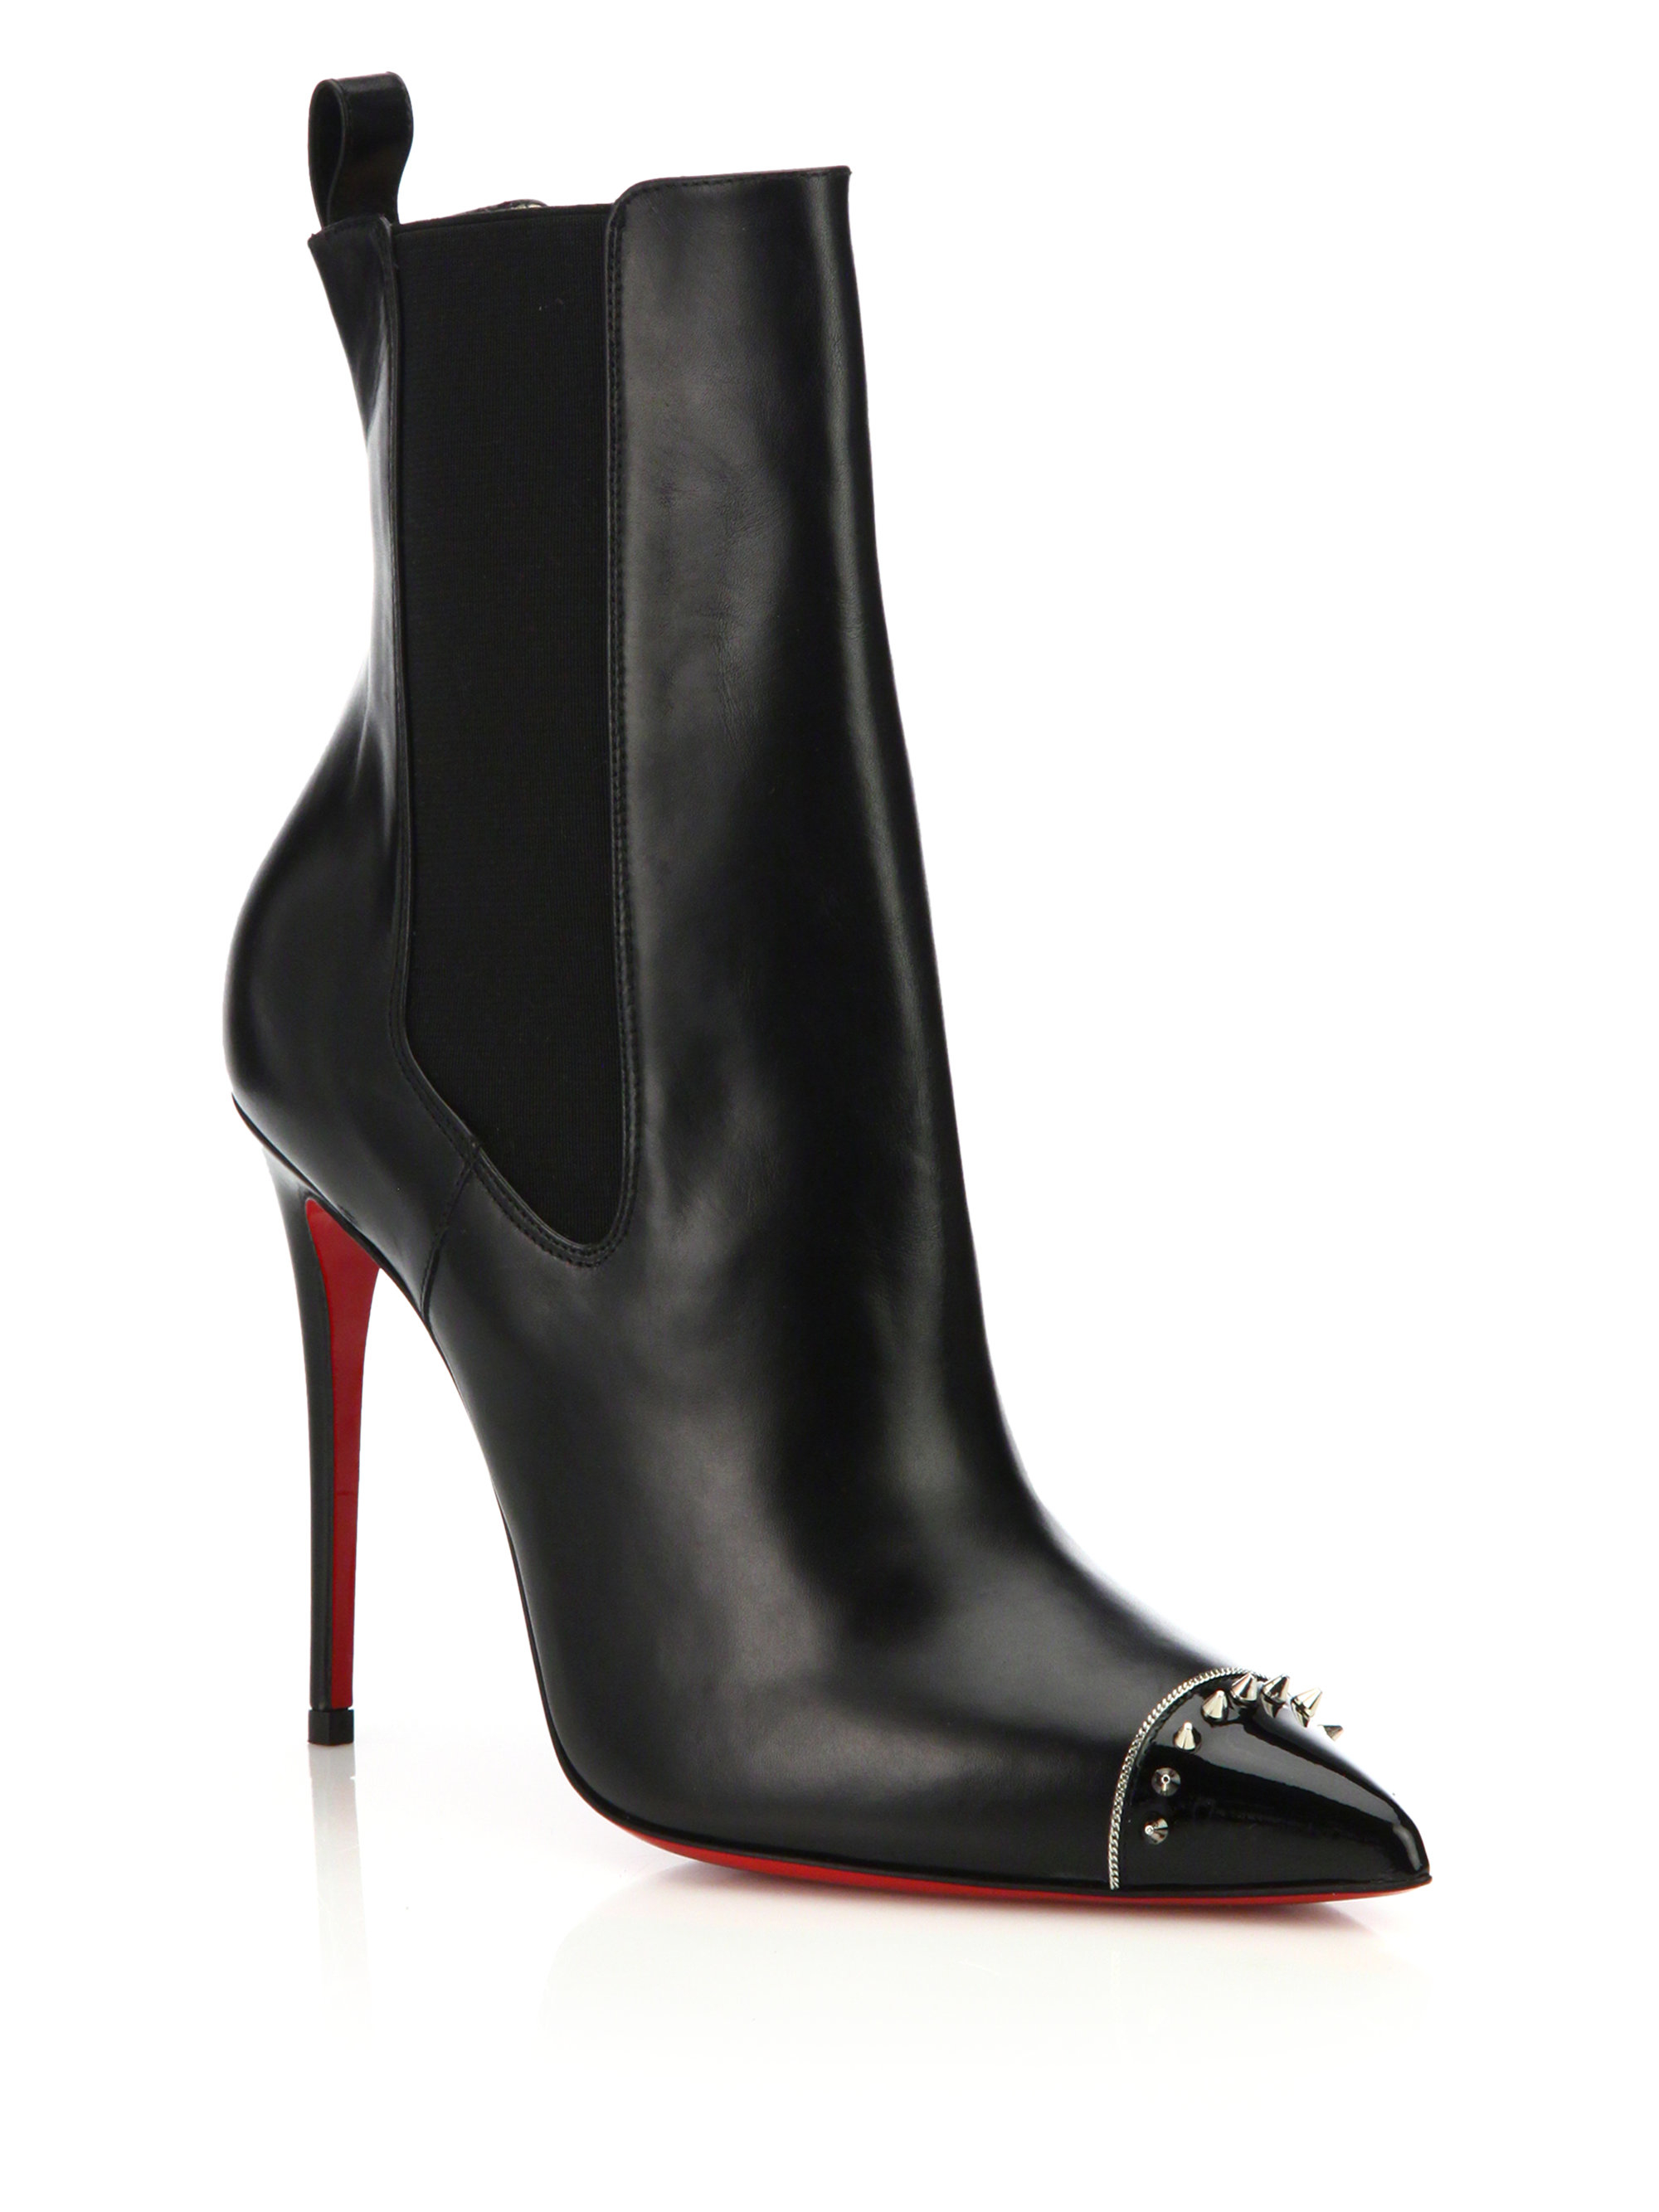 christian louboutin round-toe booties Black suede | cosmetics ...